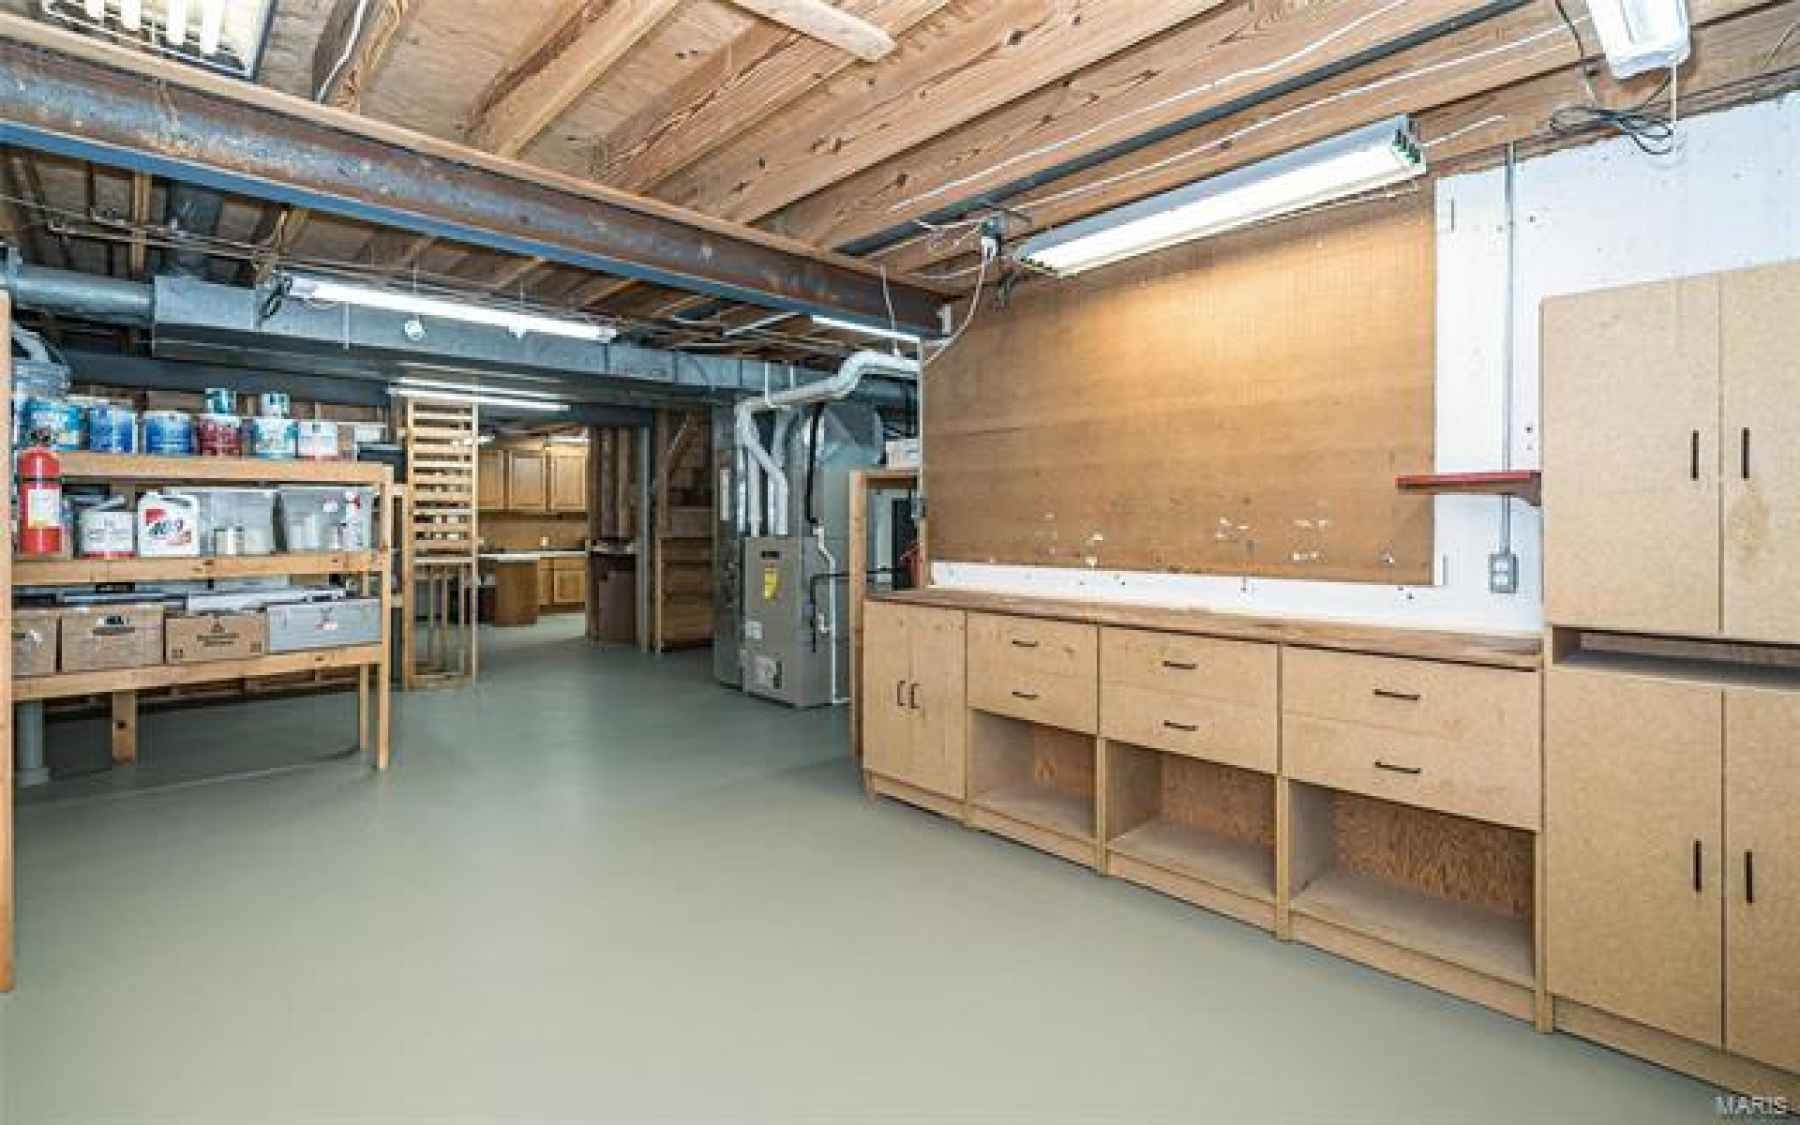 Newly painted walls & floor in unfinished Basement with purposely placed storage and cabinetry.